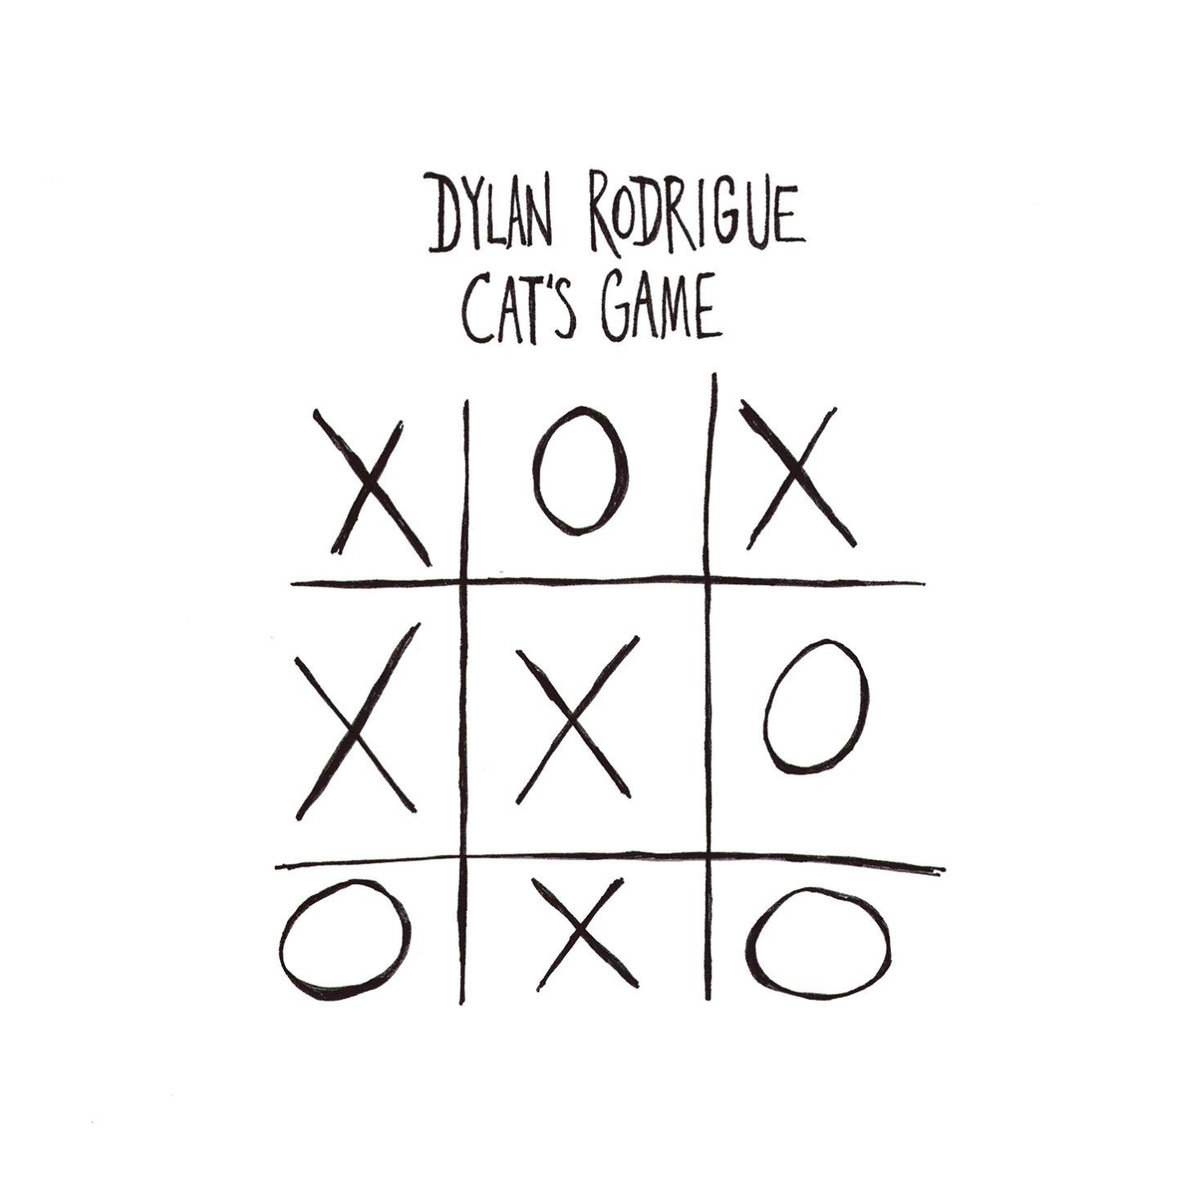 NEWS: debut album from Dylan Rodrigue to be released next month